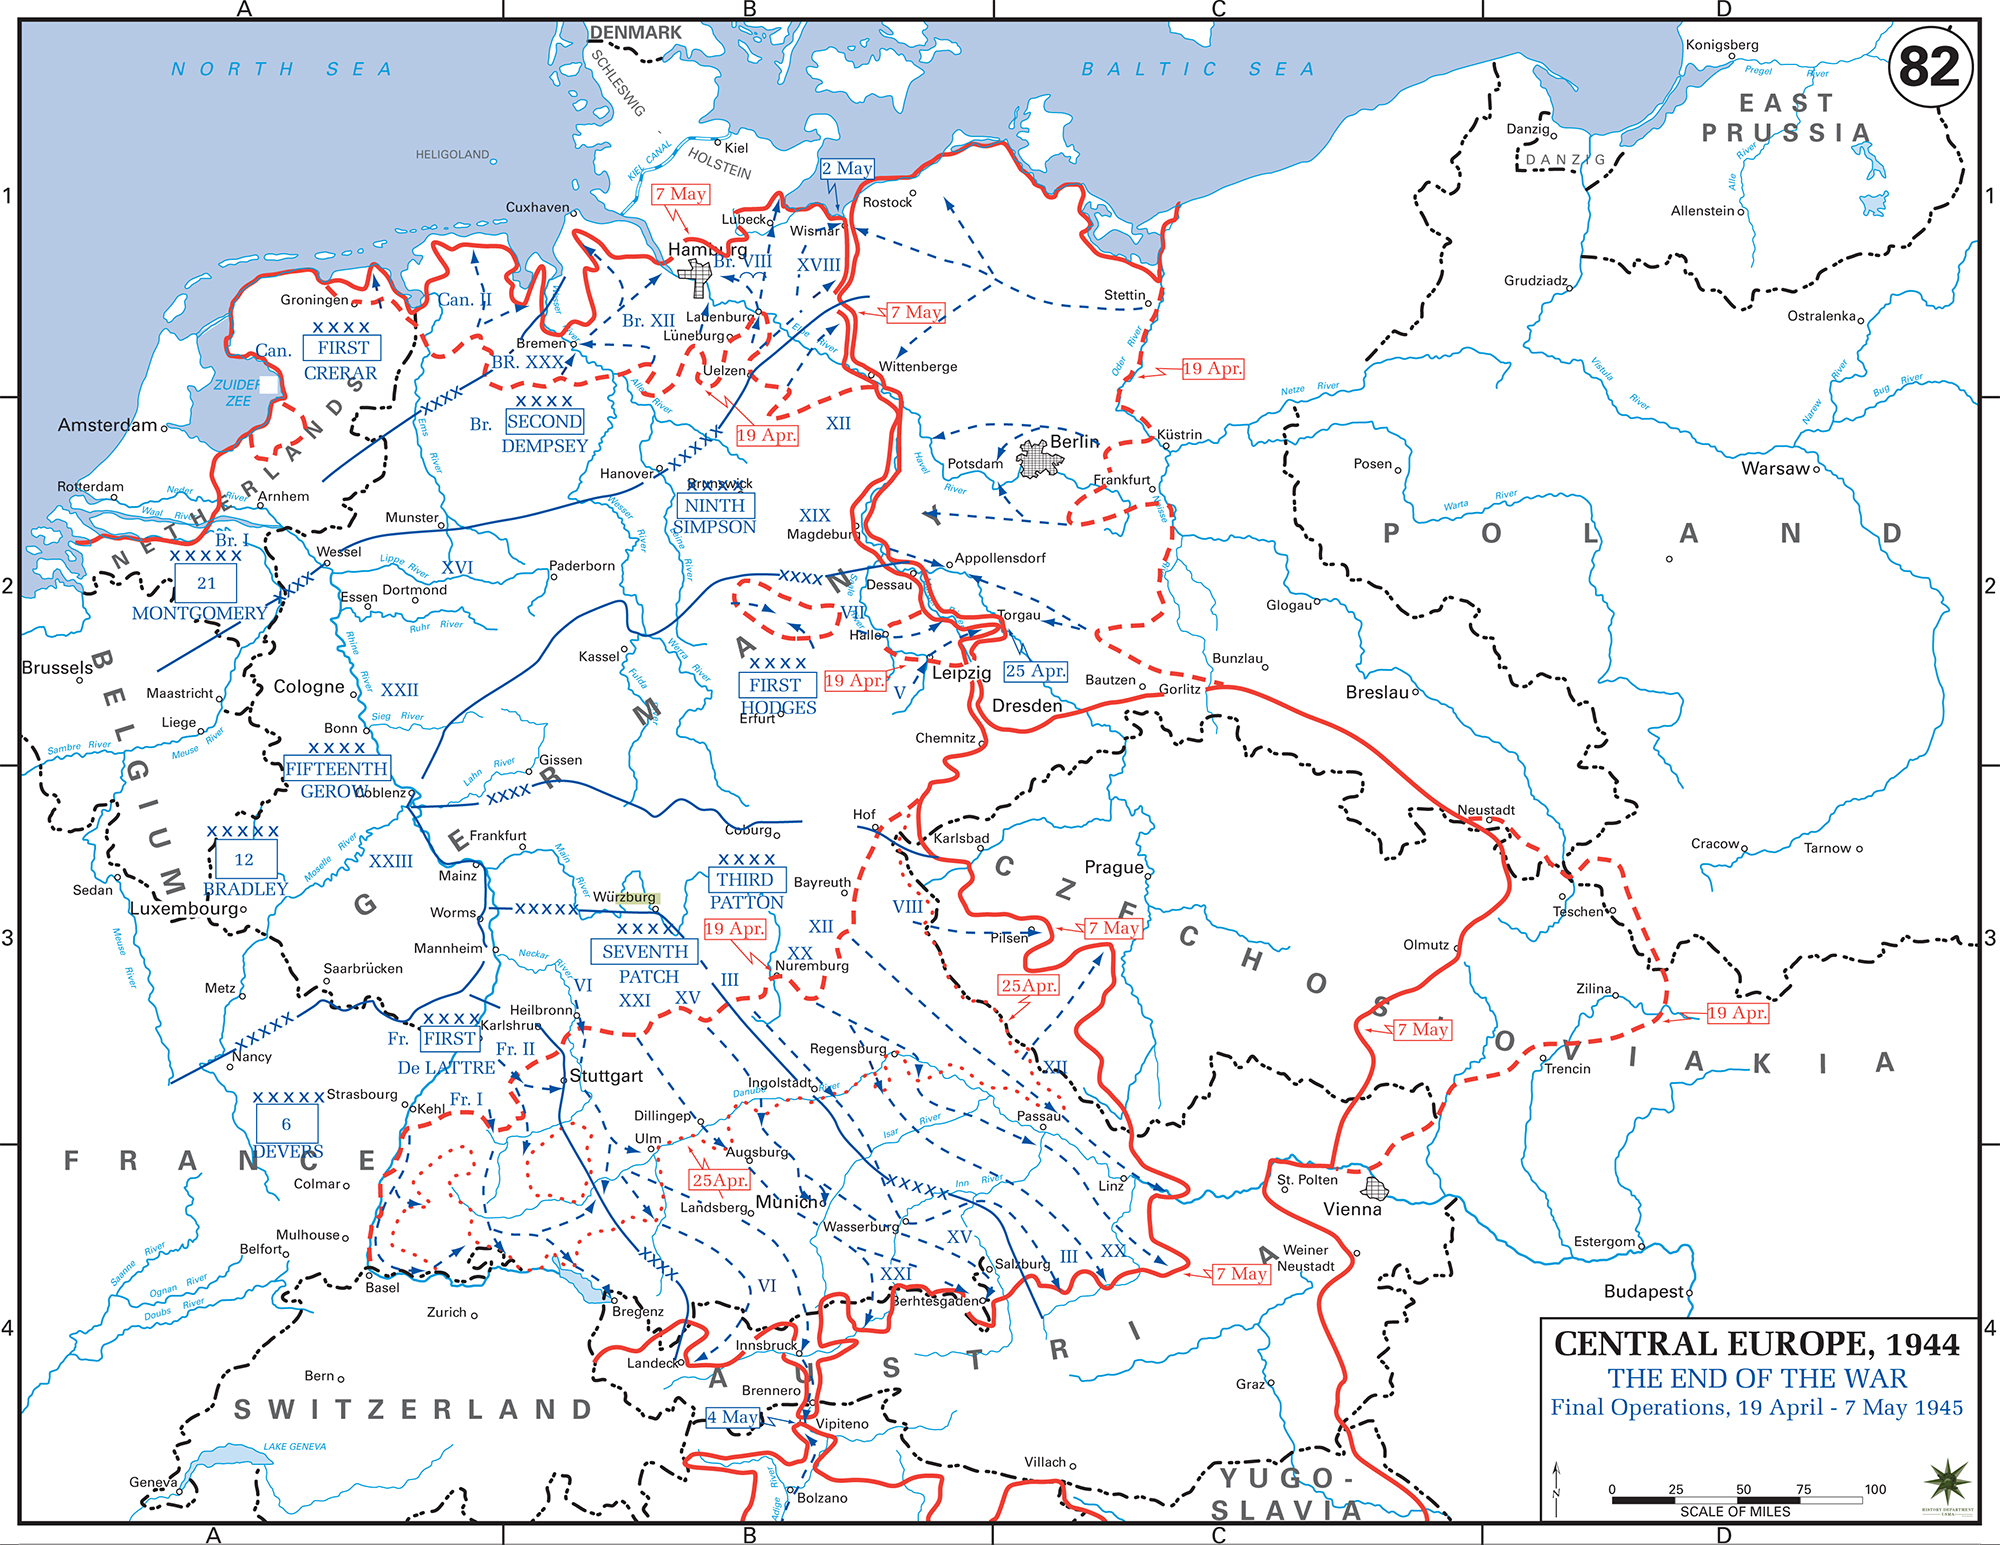 Map of wwii germany may 1945 map of world war ii germany final operations april 19 may 7 gumiabroncs Choice Image